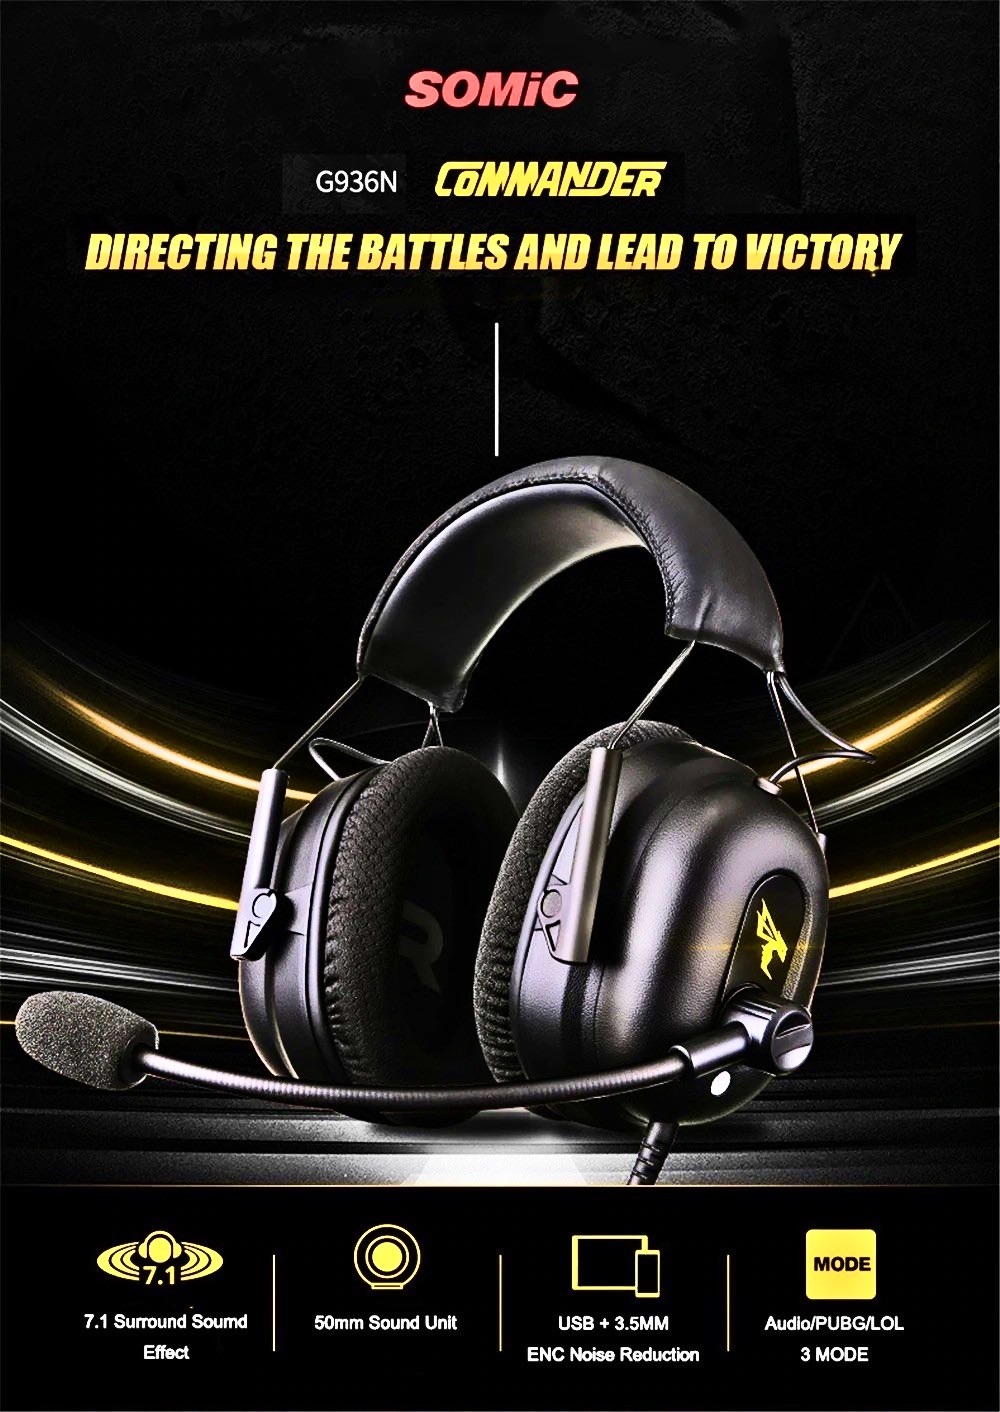 Somic G936N Gaming Headset 7.1 Surround Sound USB 3.5mm ENC Noise Cancelling Headphone with Mic